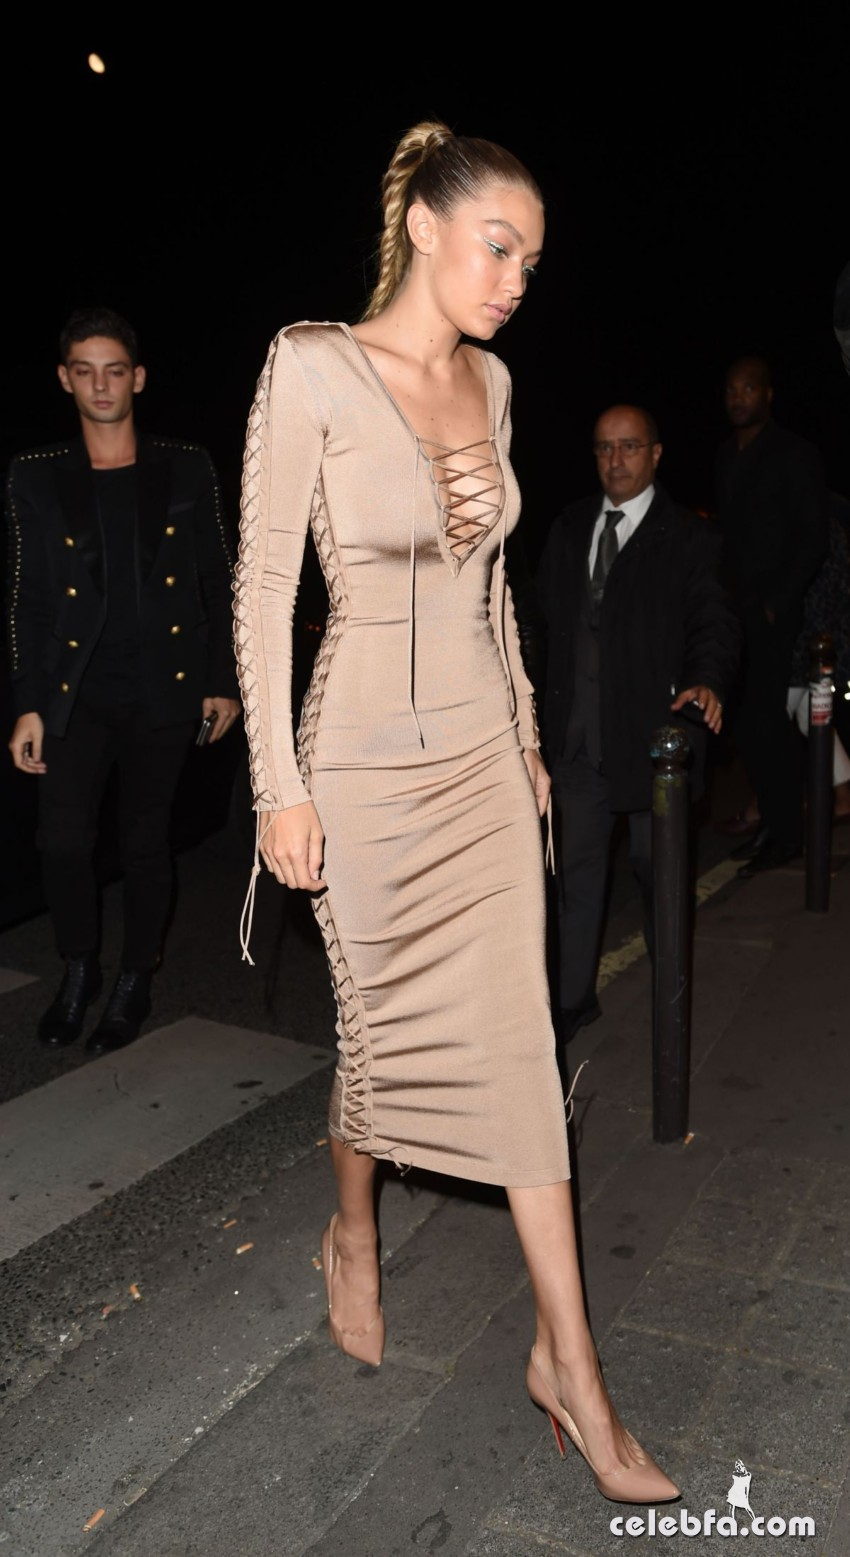 gigi-hadid-at-balmain-fashion-show-after-party-in-paris (5)